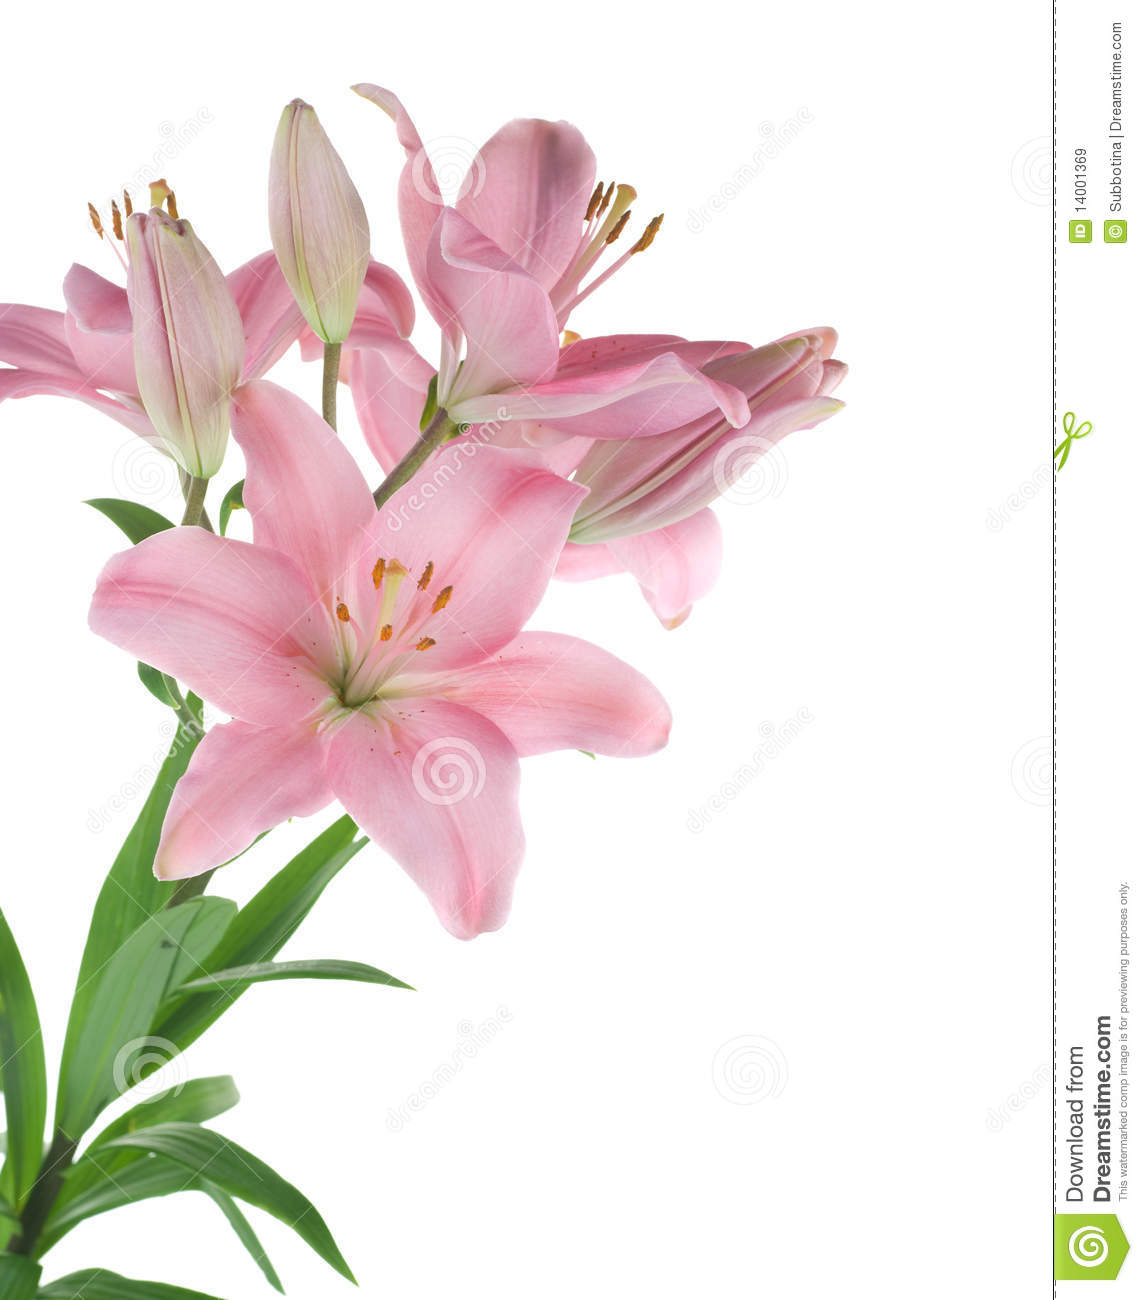 Download Lily stock image. Image of congratulation, closeup, bouquet - 14001369